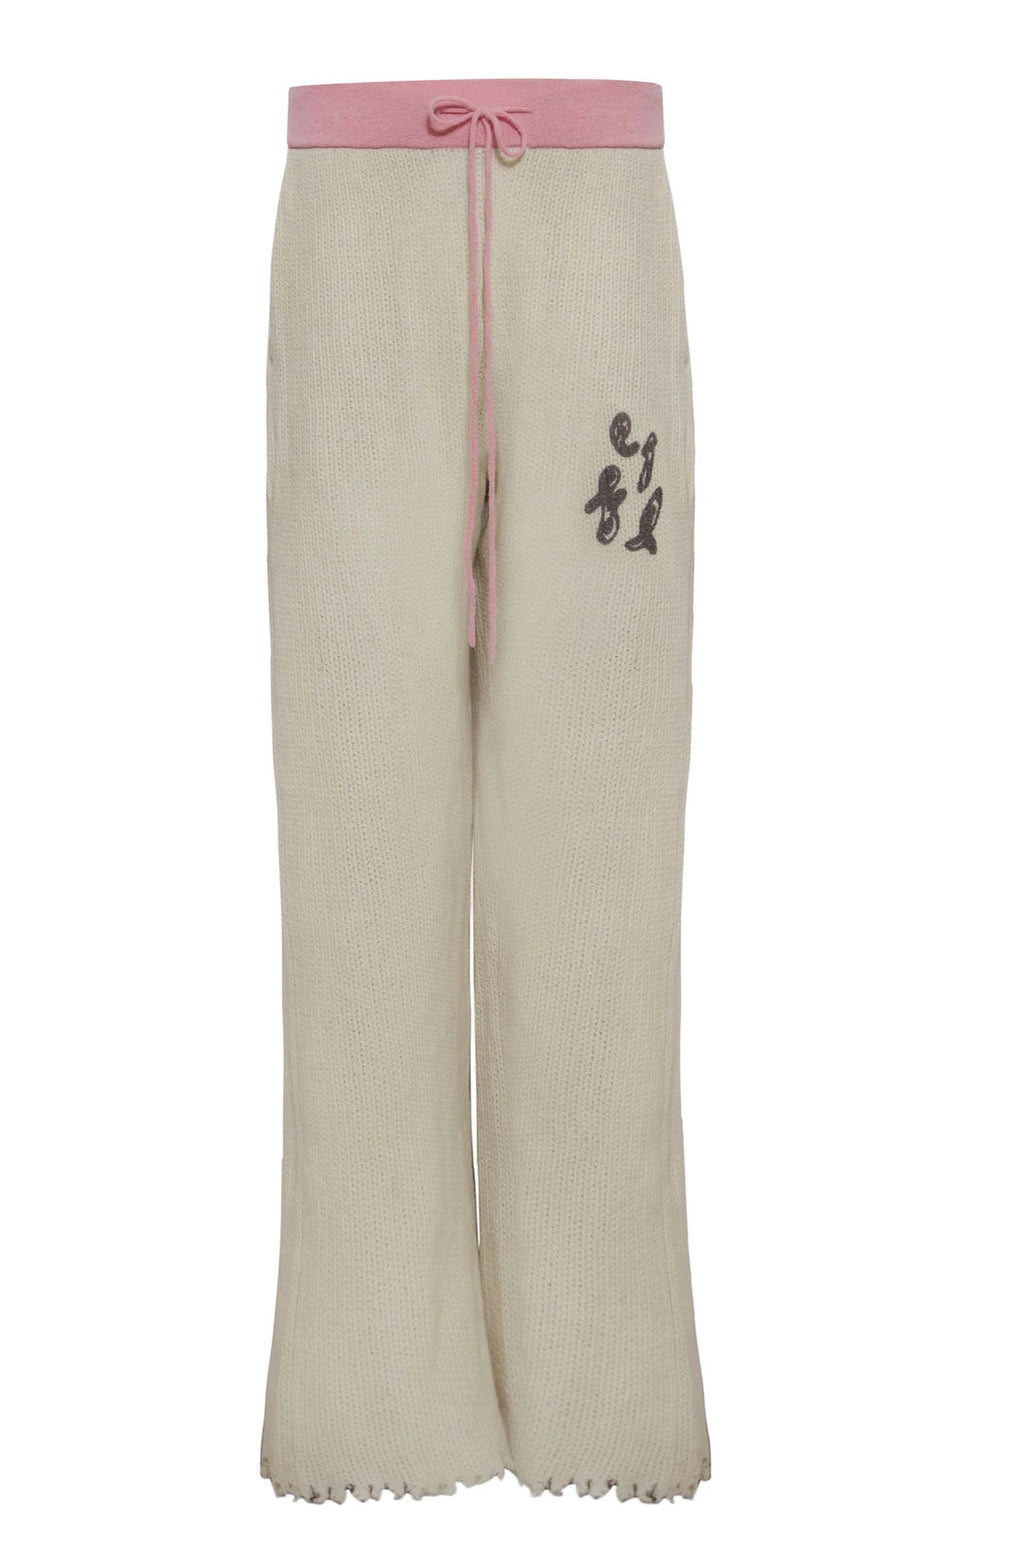 Adrian Waffle Cashmere Help Trousers Pink